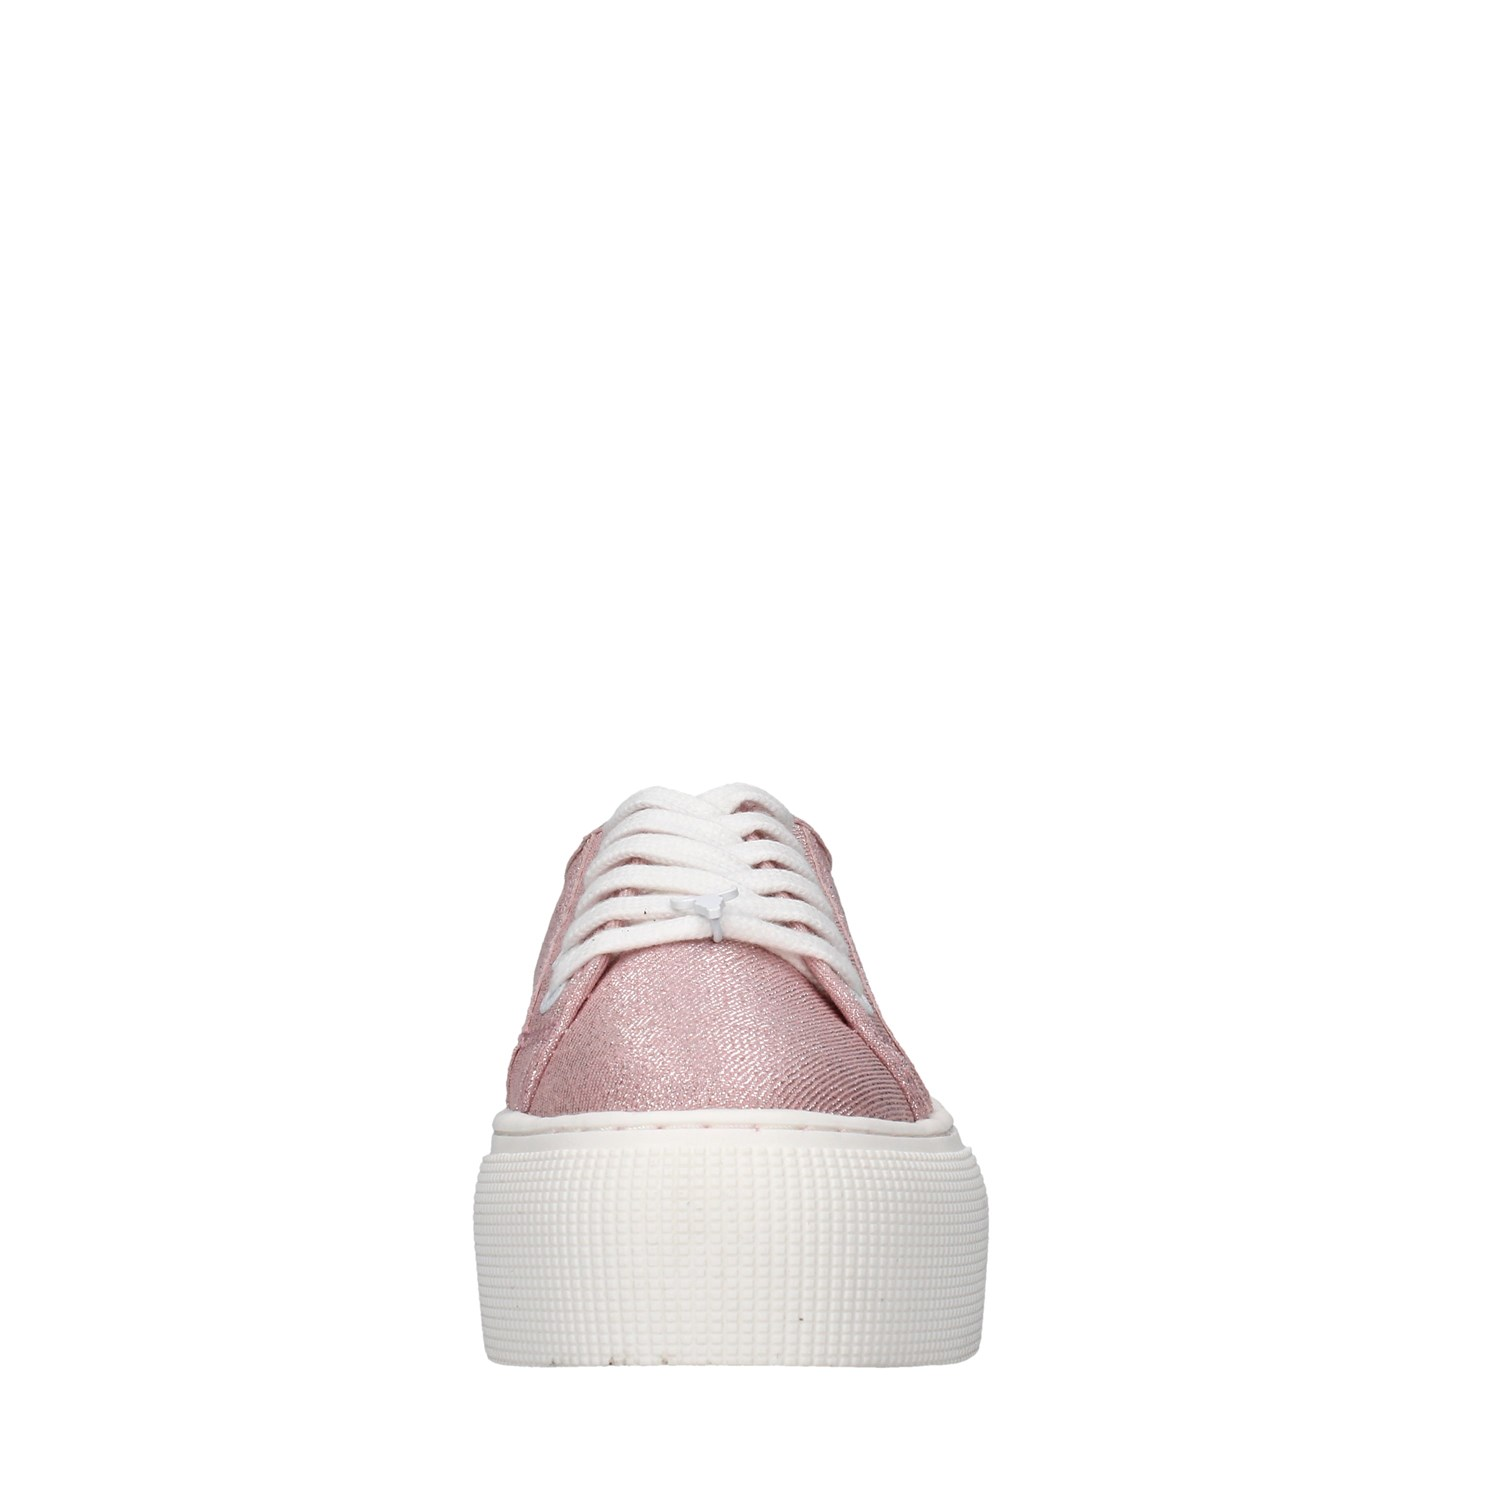 Windsor Smith Shoes Women Sneakers PINK WSPRUBY